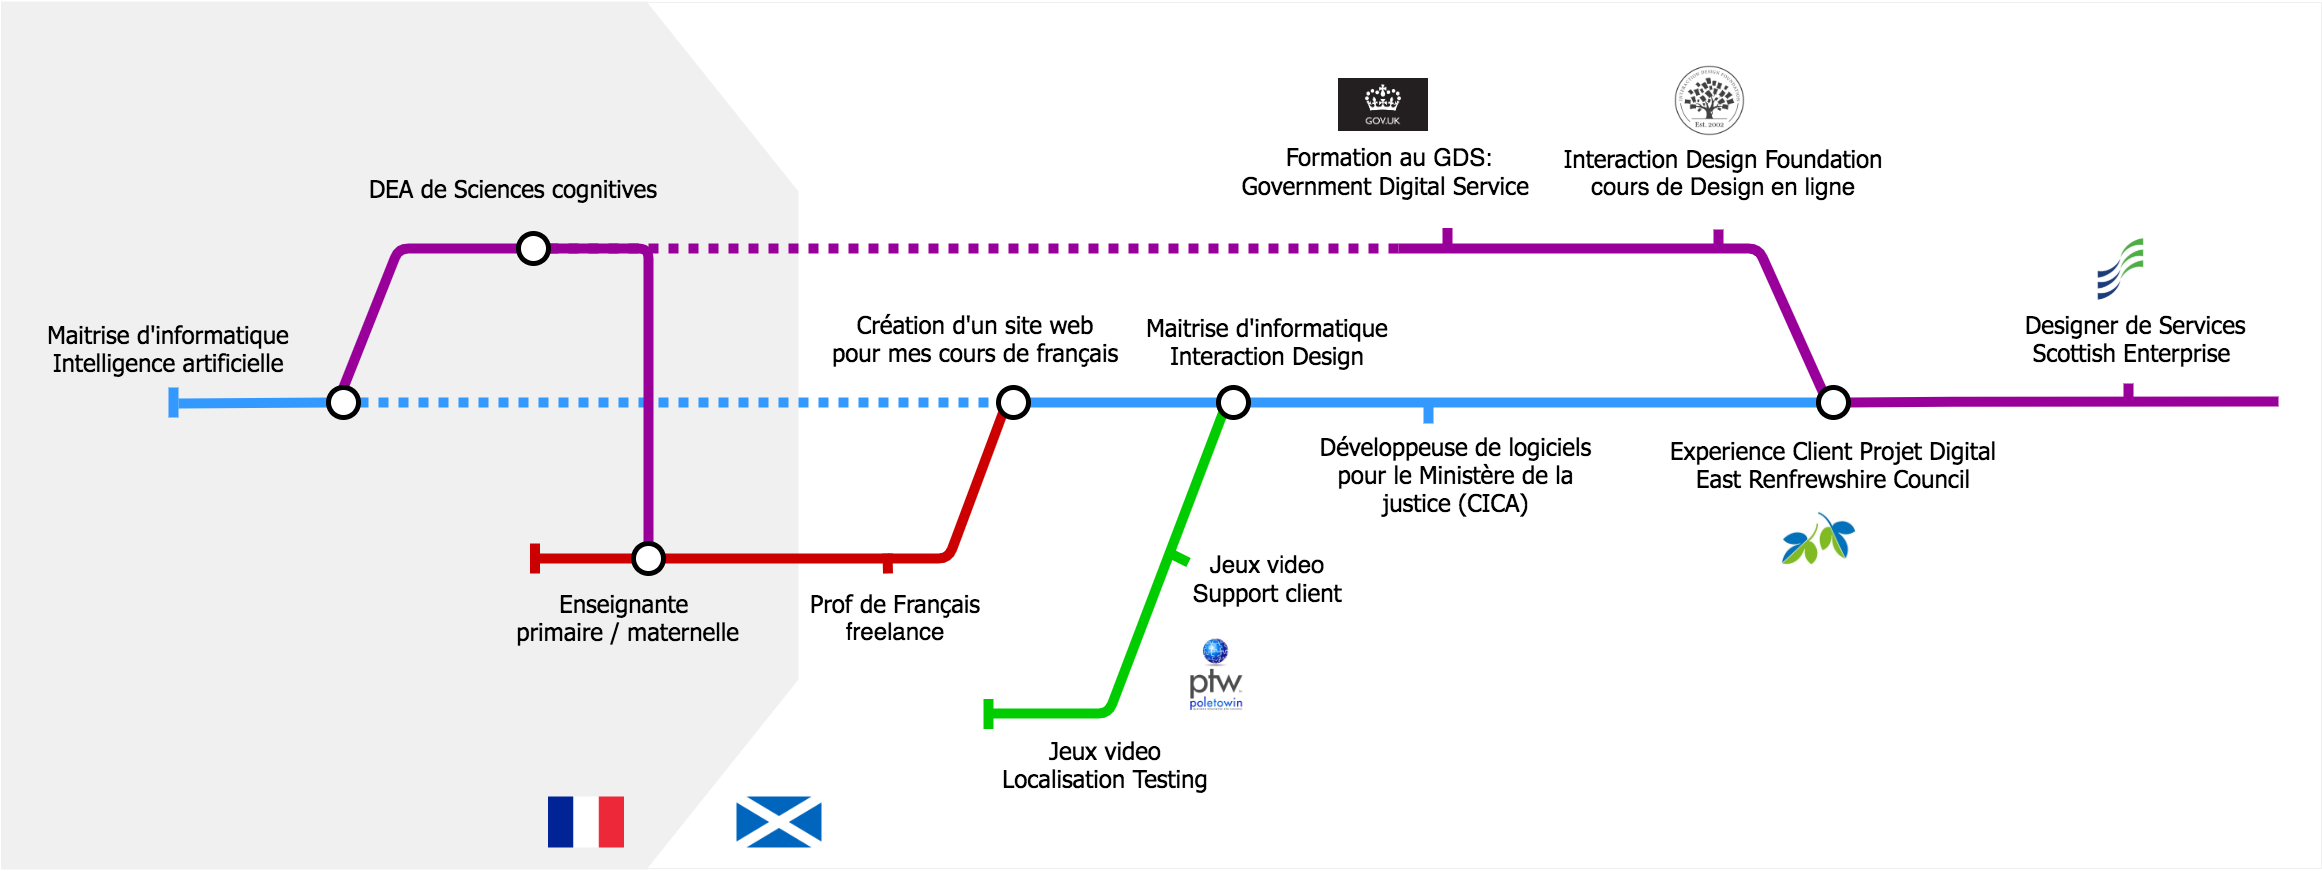 my professional journey represented as a tube map, from France to Scotland, from IT to design via video game support